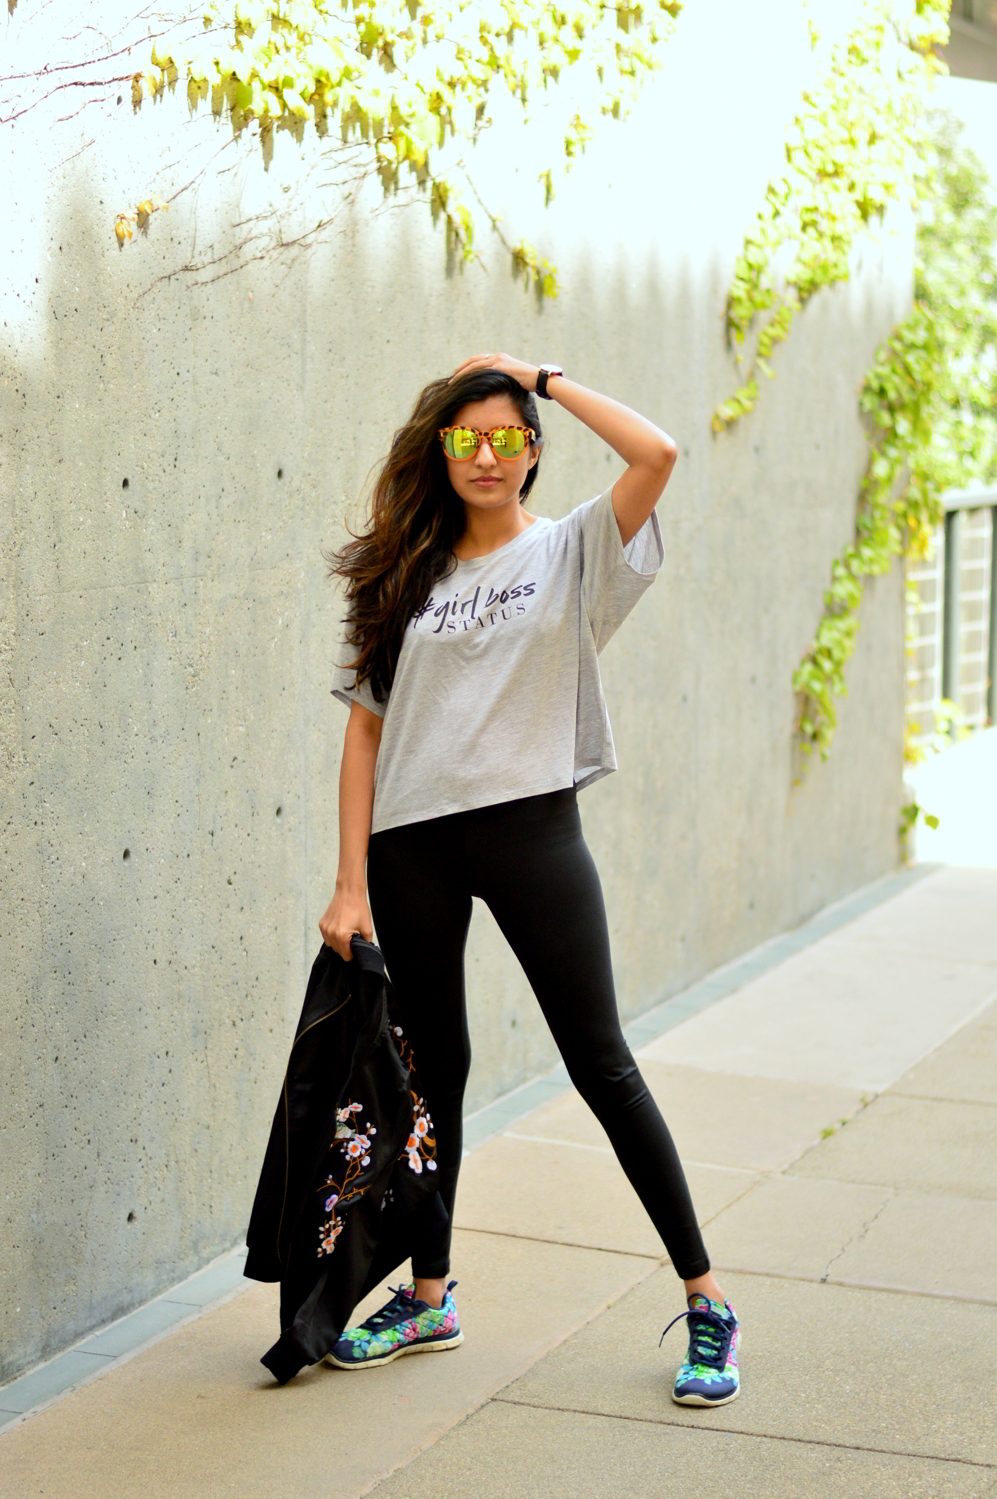 athleisure-girlboss-graphic-tee-weekend-wear-floral-sneakers-casual-blogger-outfit 3